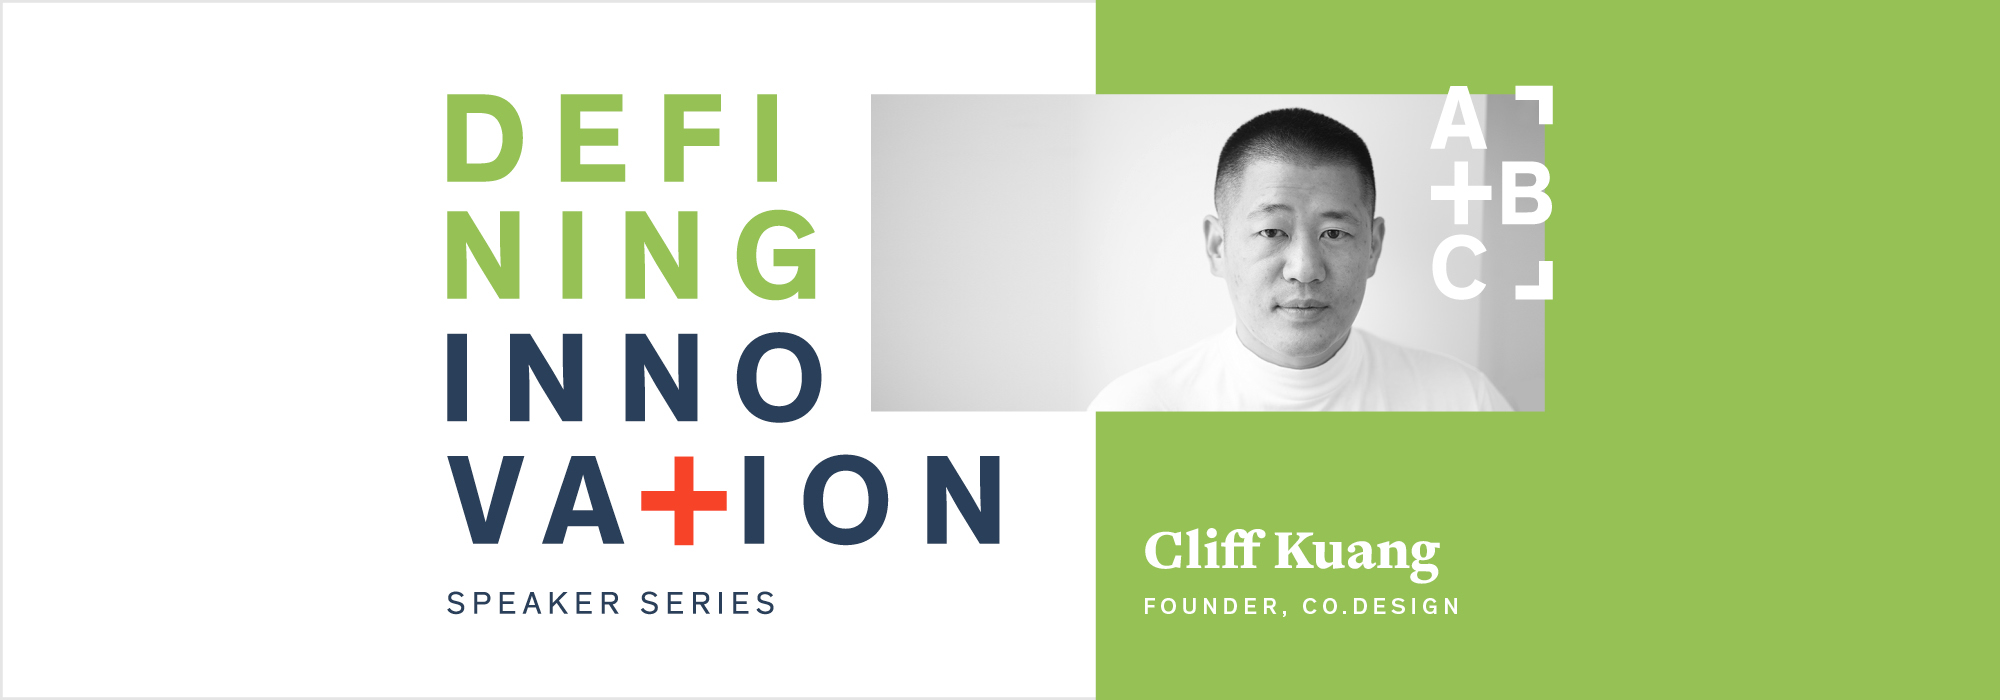 Defining Innovation Presents Cliff Kuang